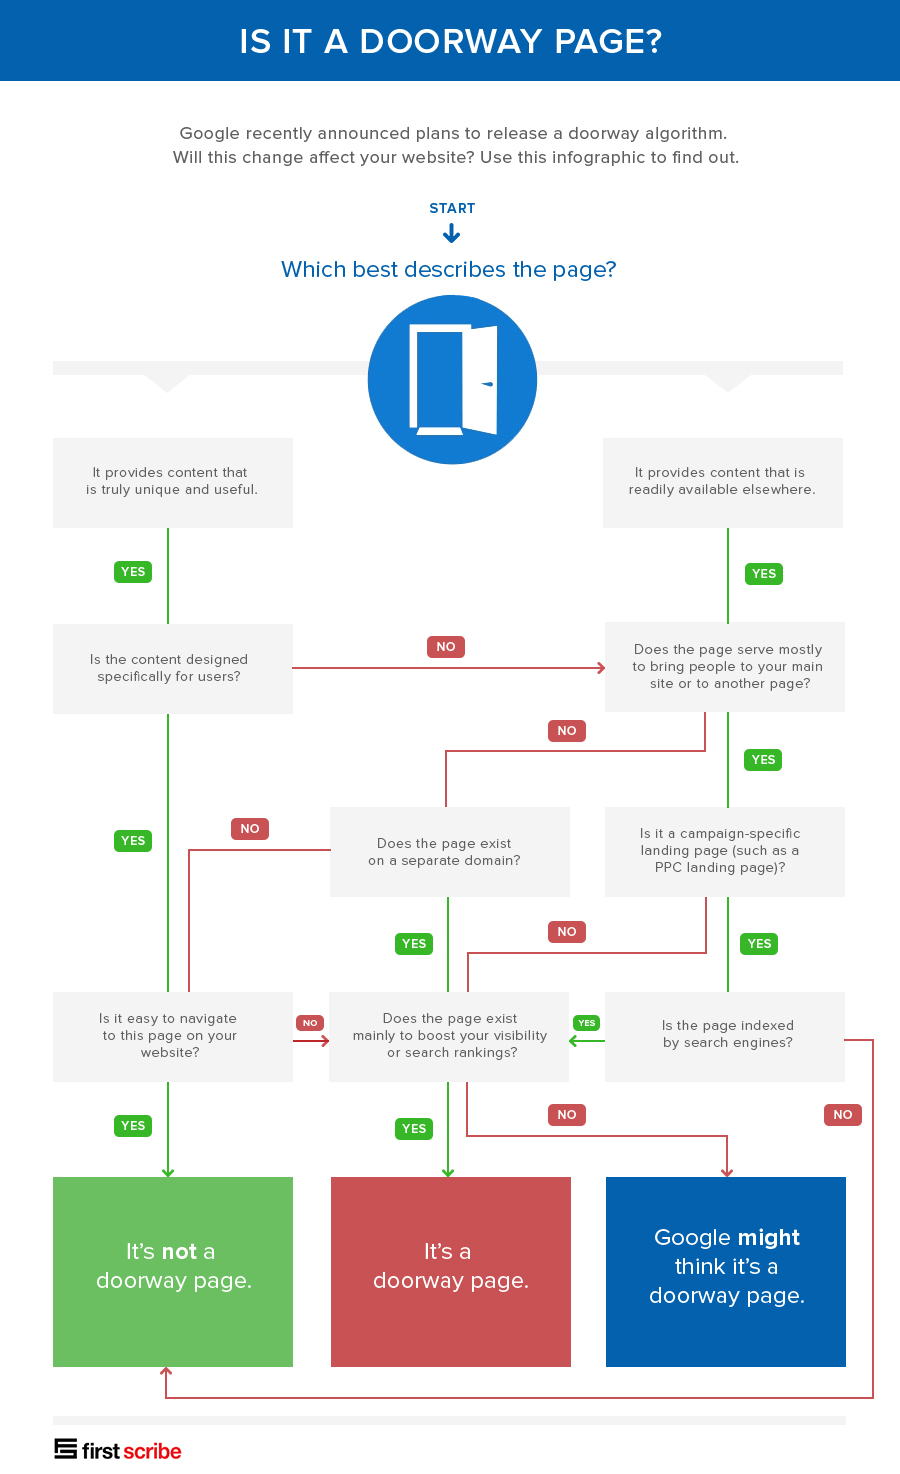 is-it-a-doorway-page-infographic